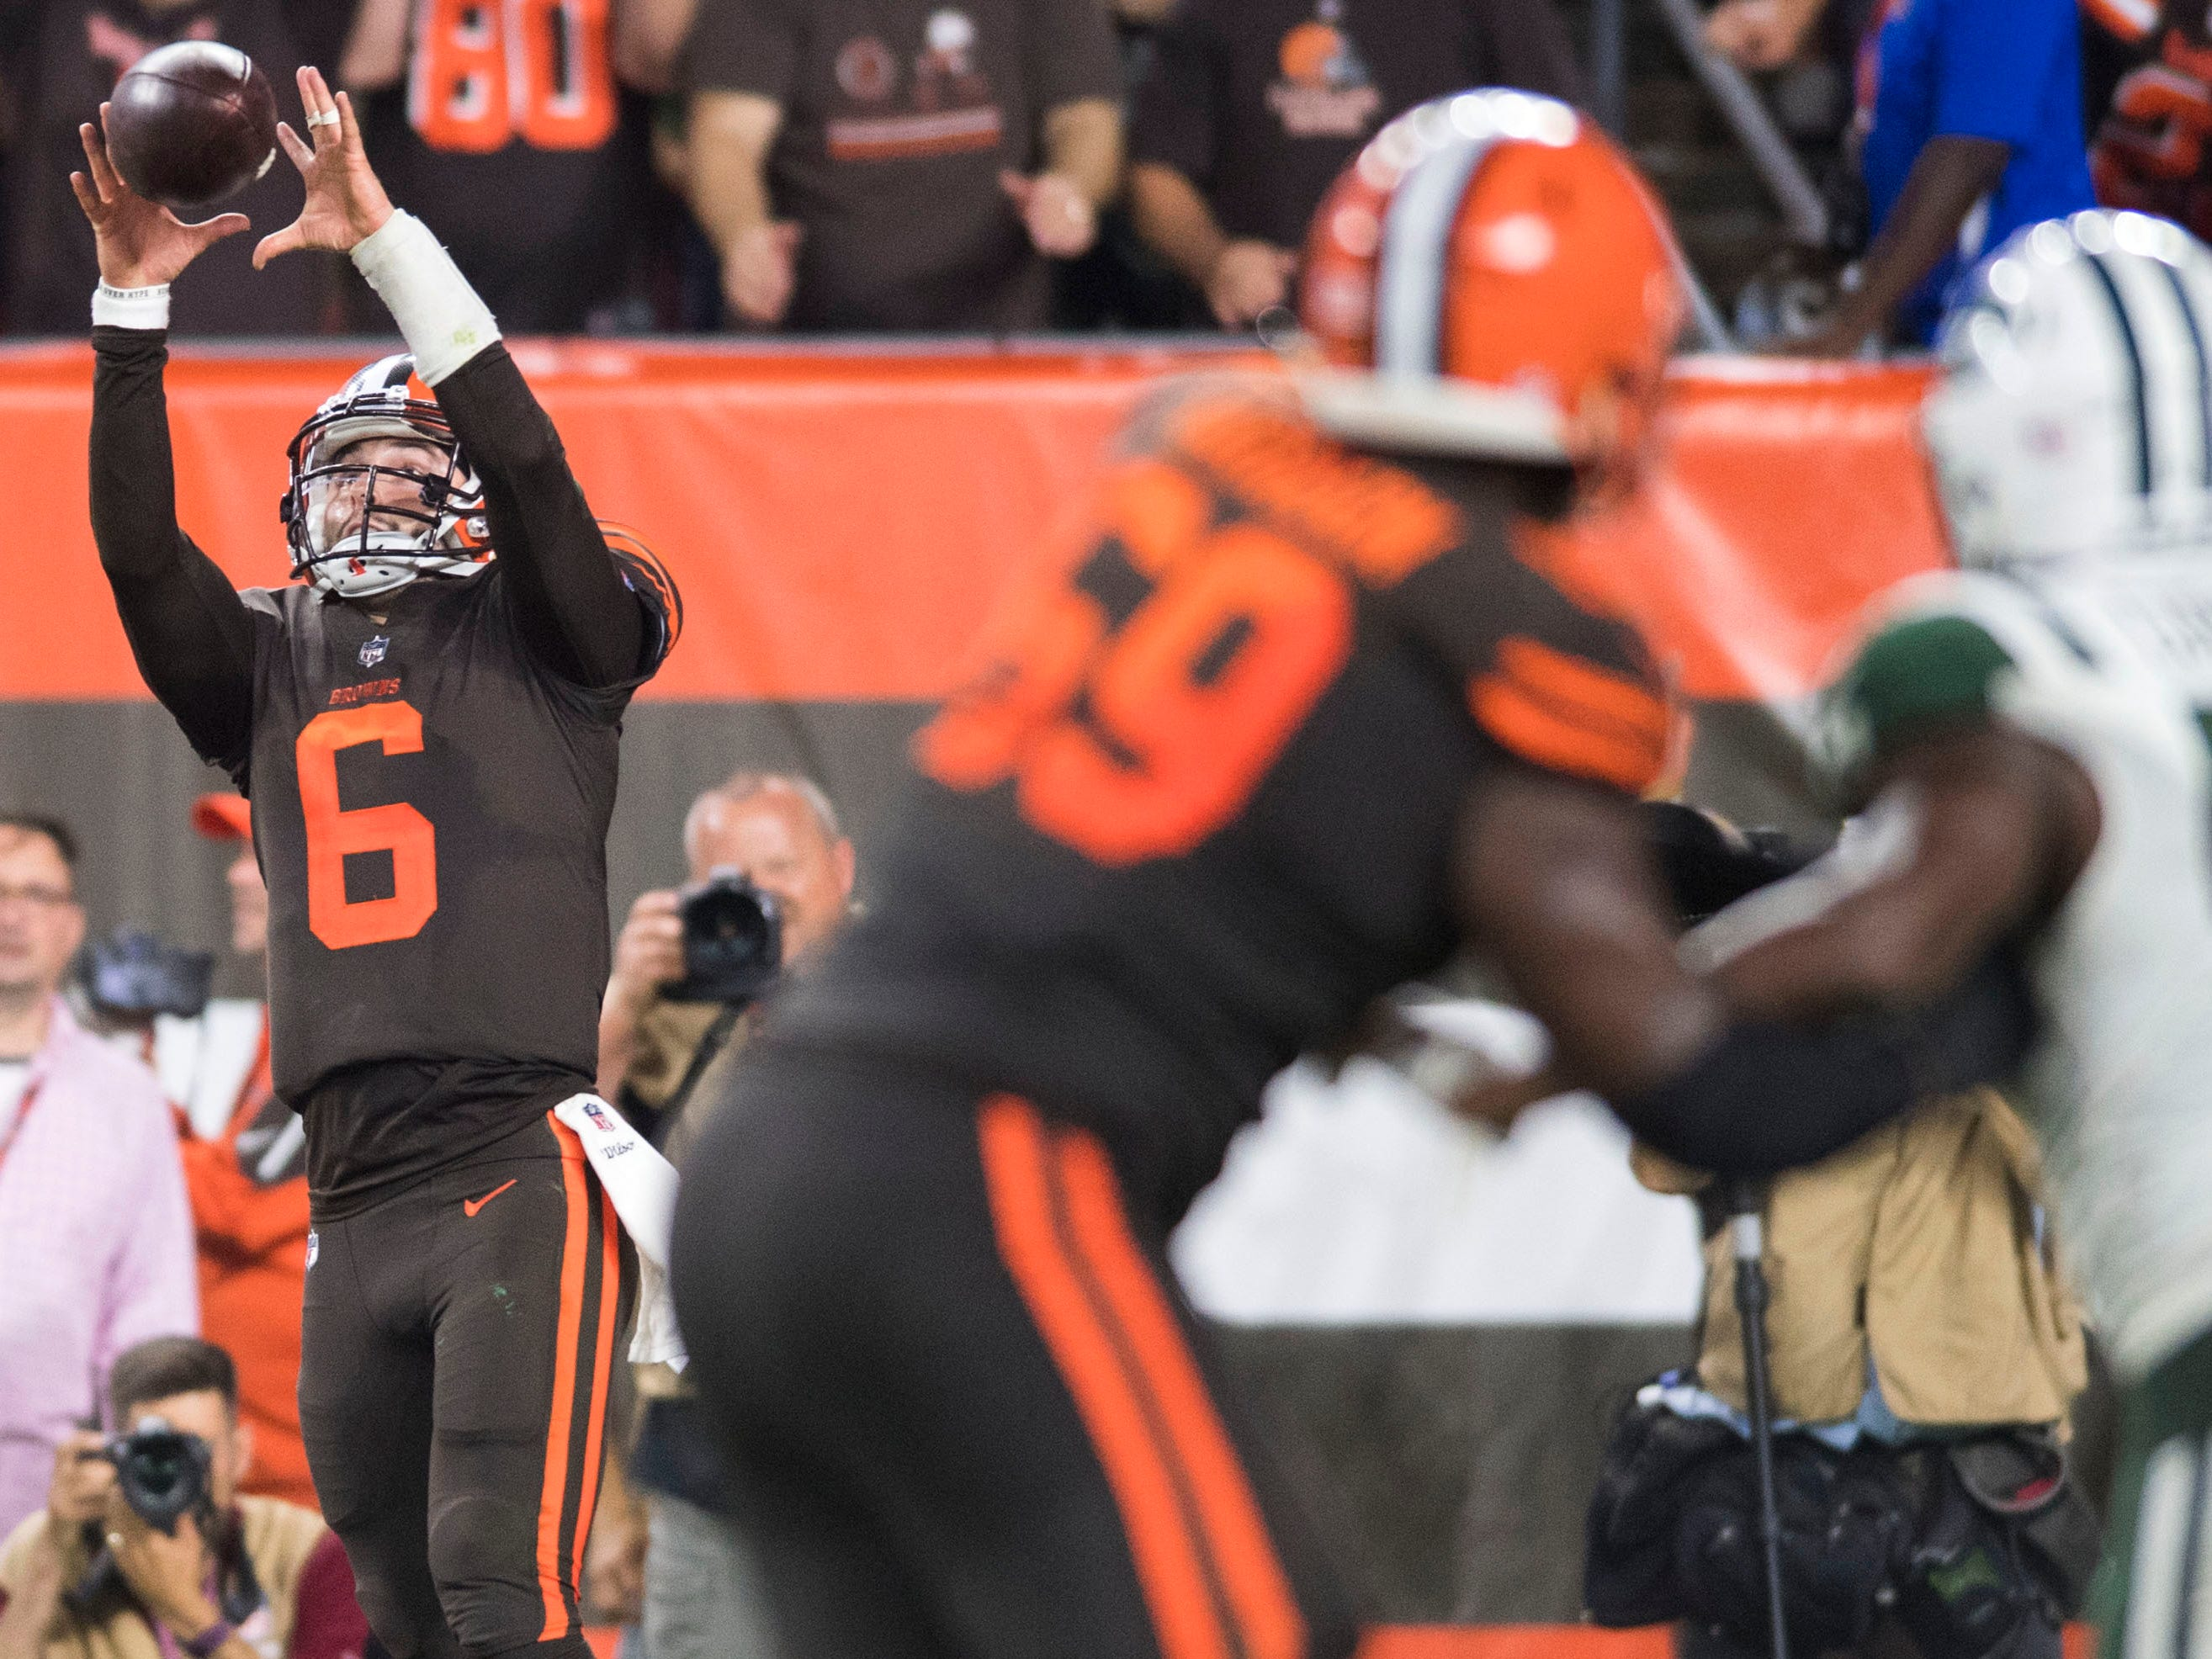 Cleveland Browns quarterback Baker Mayfield catches a pass for a two-point conversion during the third quarter against the New York Jets at FirstEnergy Stadium.